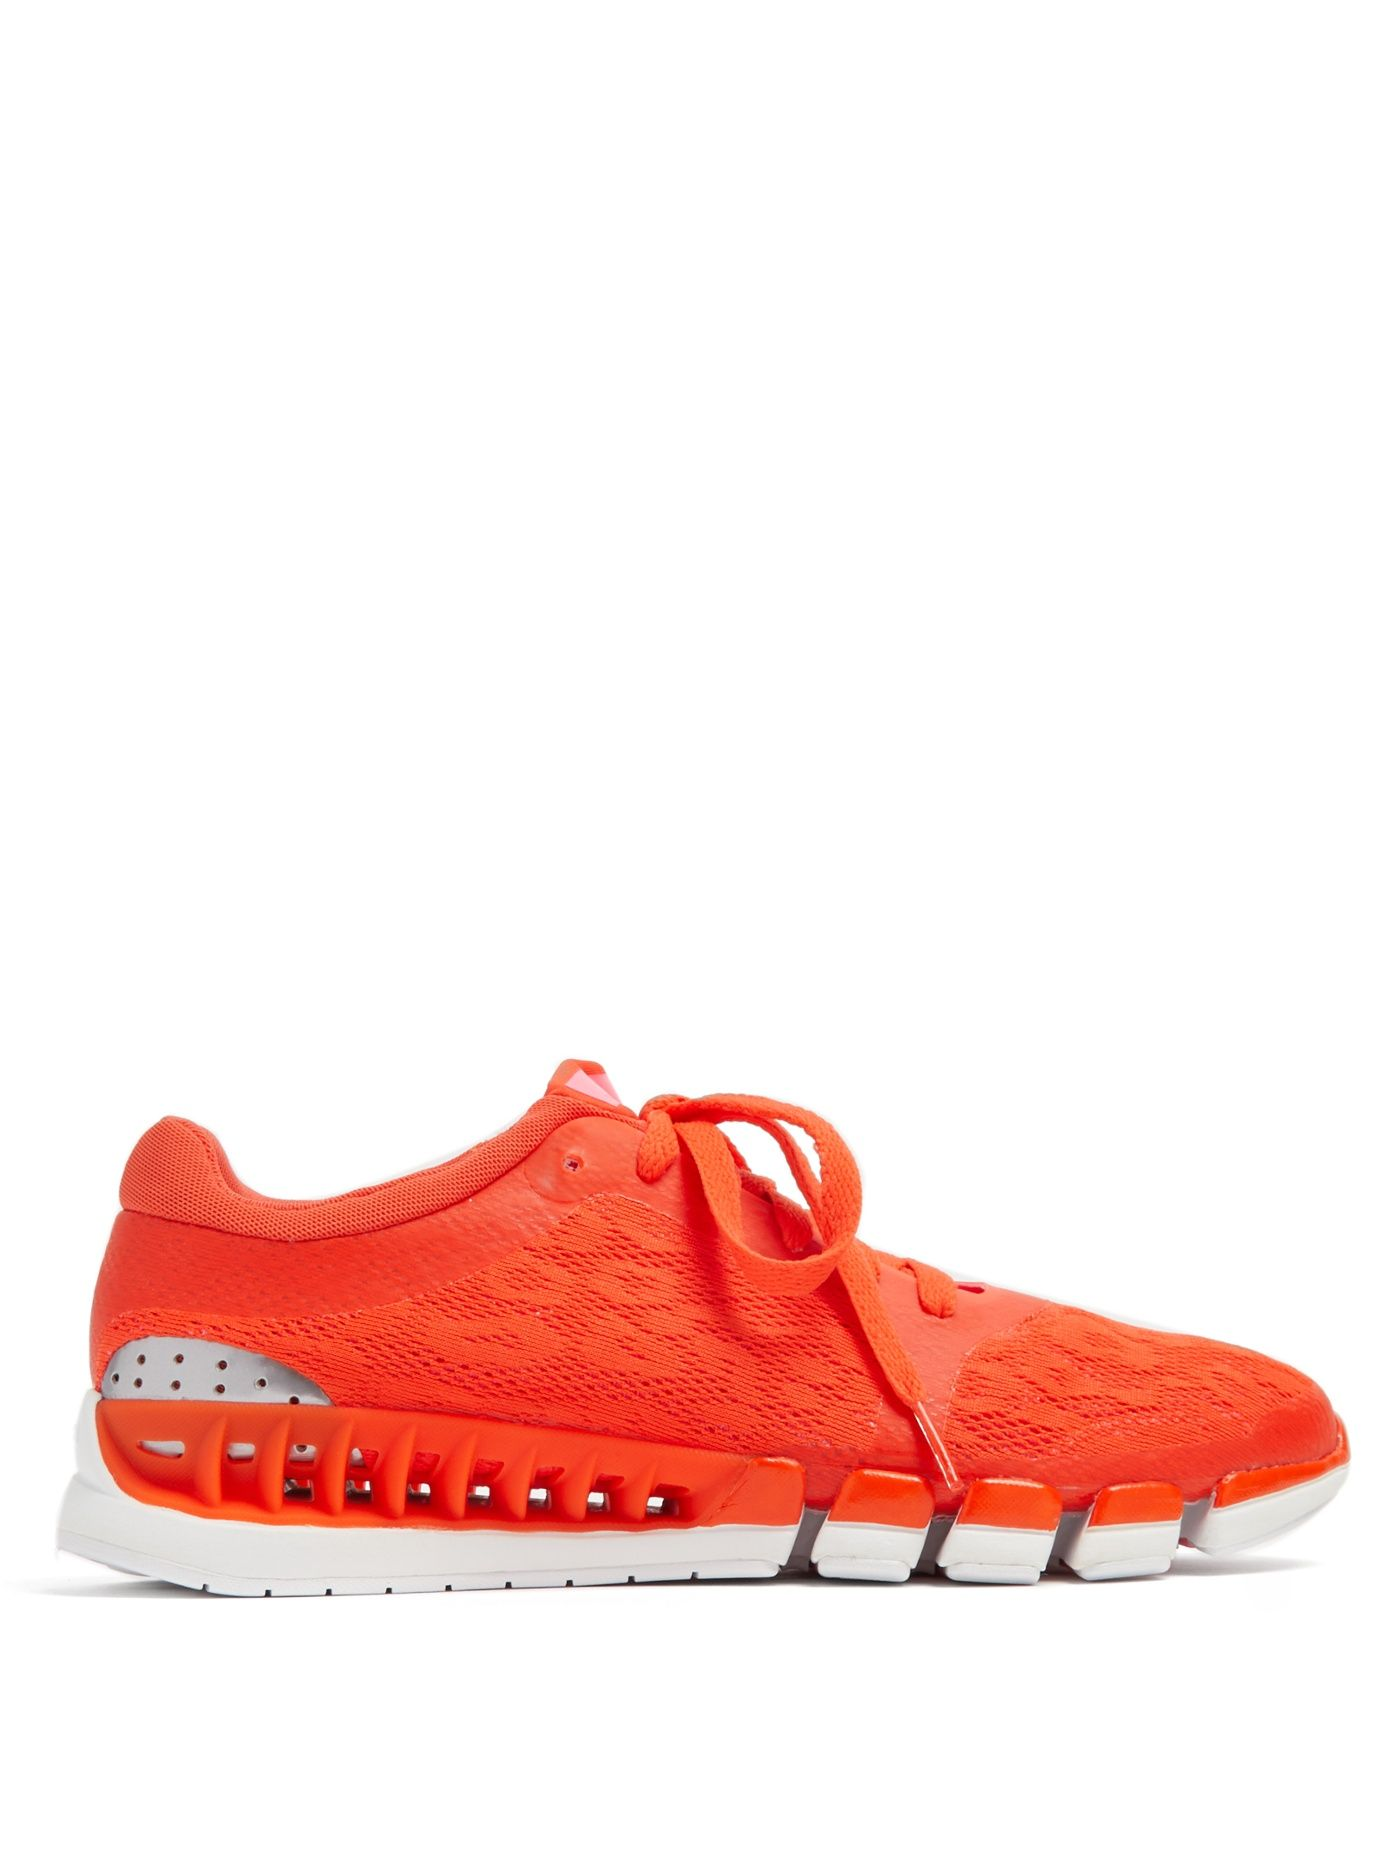 Online Cheap Price Best Prices adidas Kea Clima low-top trainers Deals Eastbay Cheap Price Outlet Genuine dRmXO